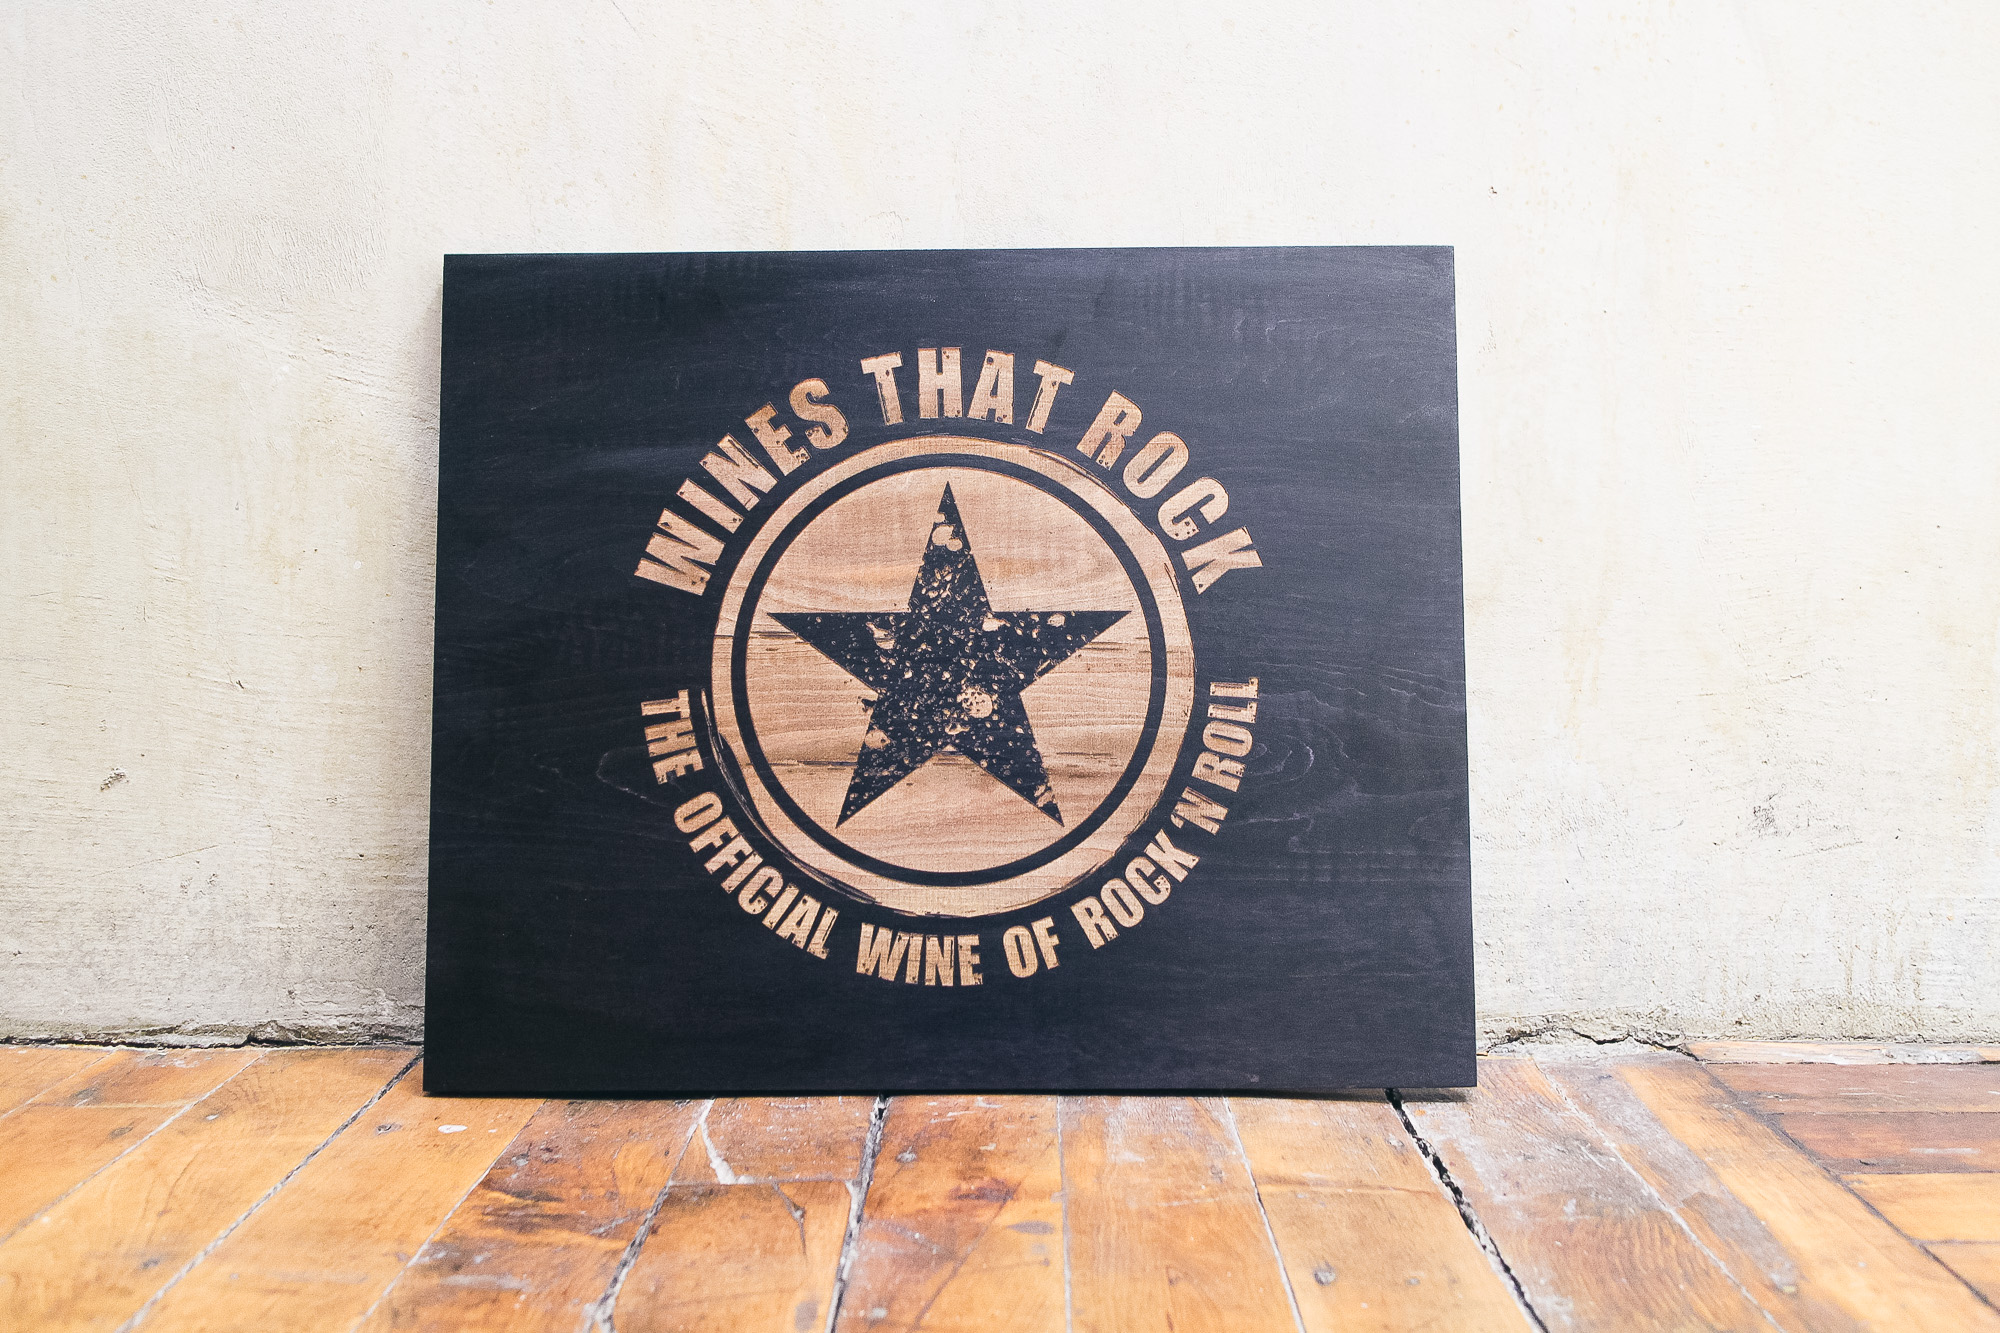 Laser etched black wood sign for Wines That Rock